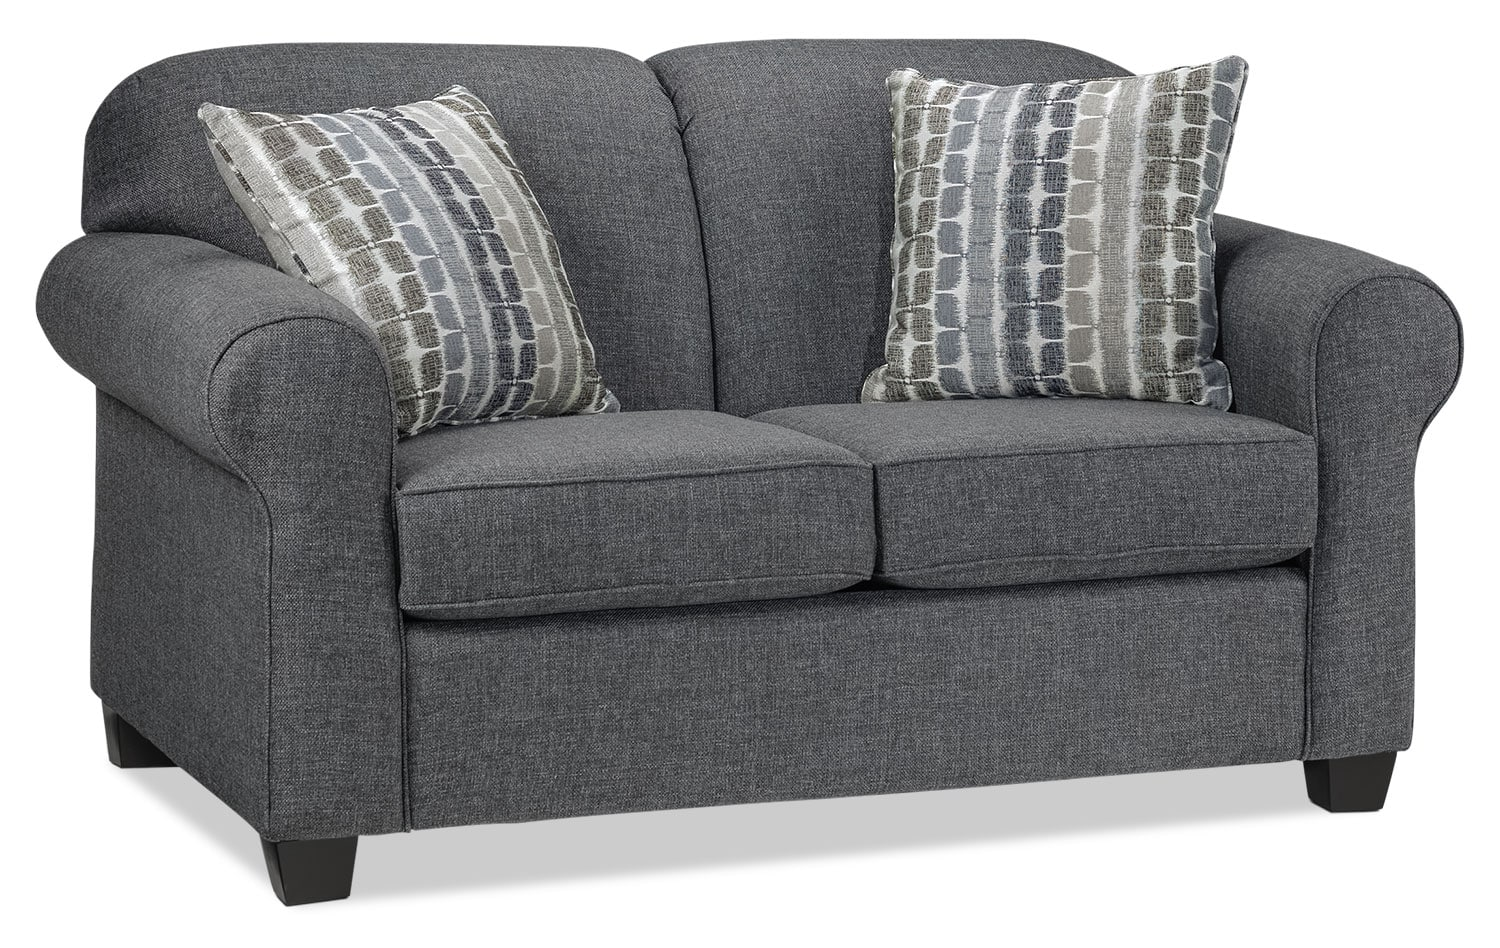 Aristotle Loveseat - Grey